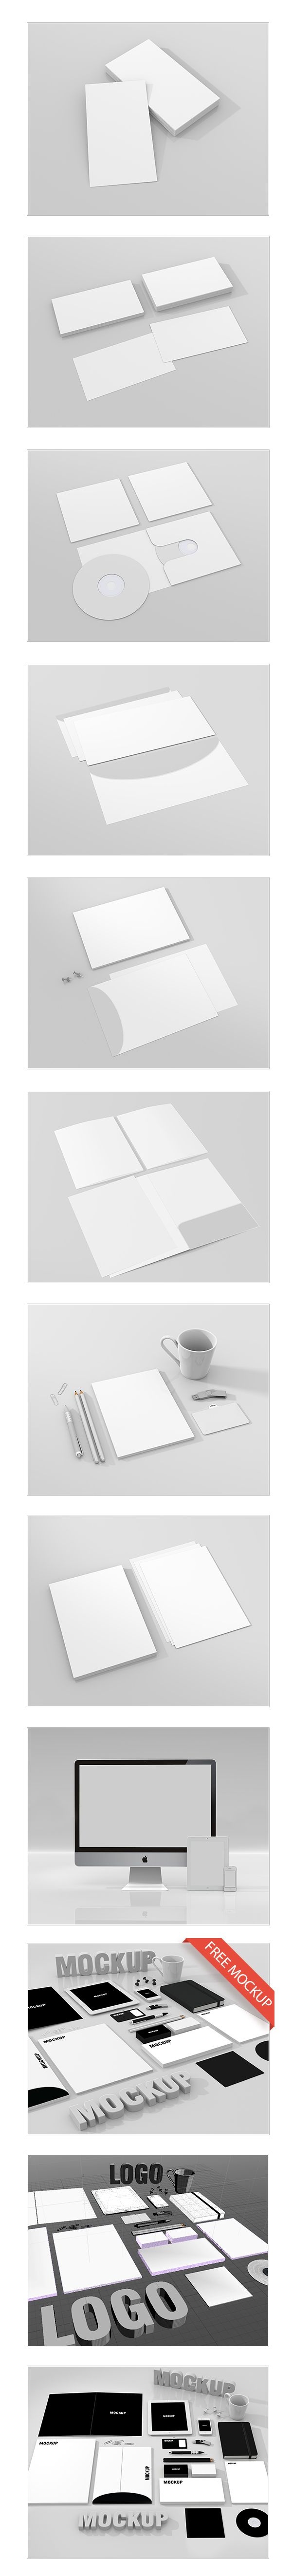 3D - MOCKUP by Taina Meneguesso, via Behance